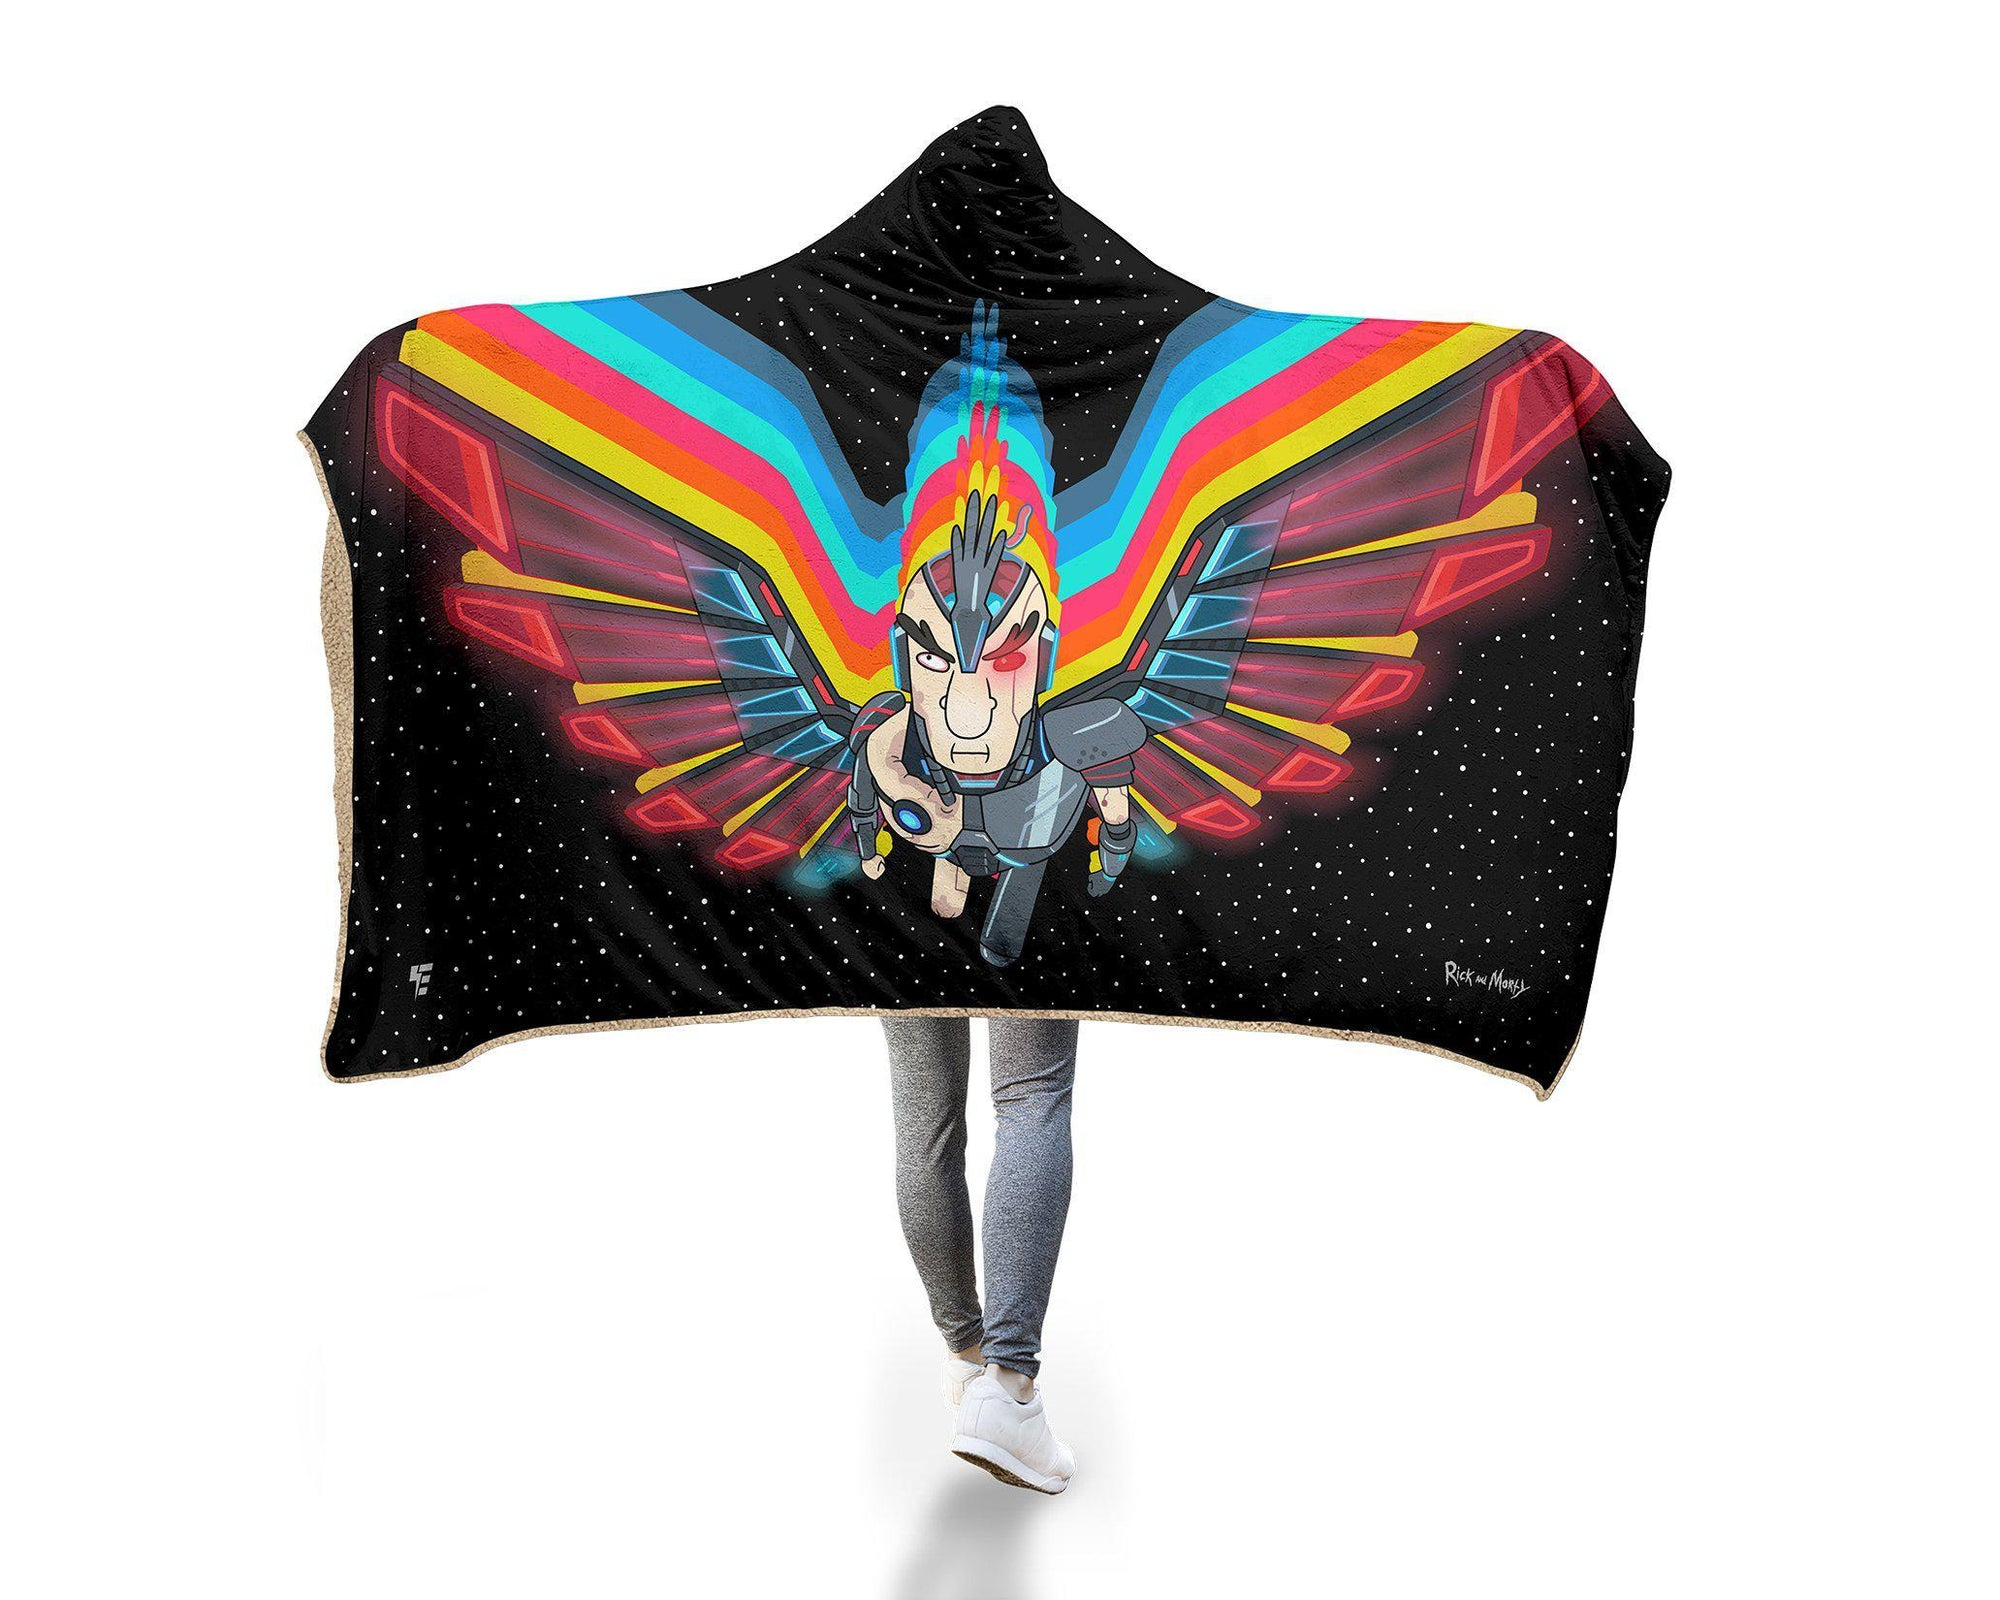 "Hyperlight Phoenix Person Hooded Blanket Hooded Blanket Electro Threads MICRO FLEECE Adult 60""X80"" Black"